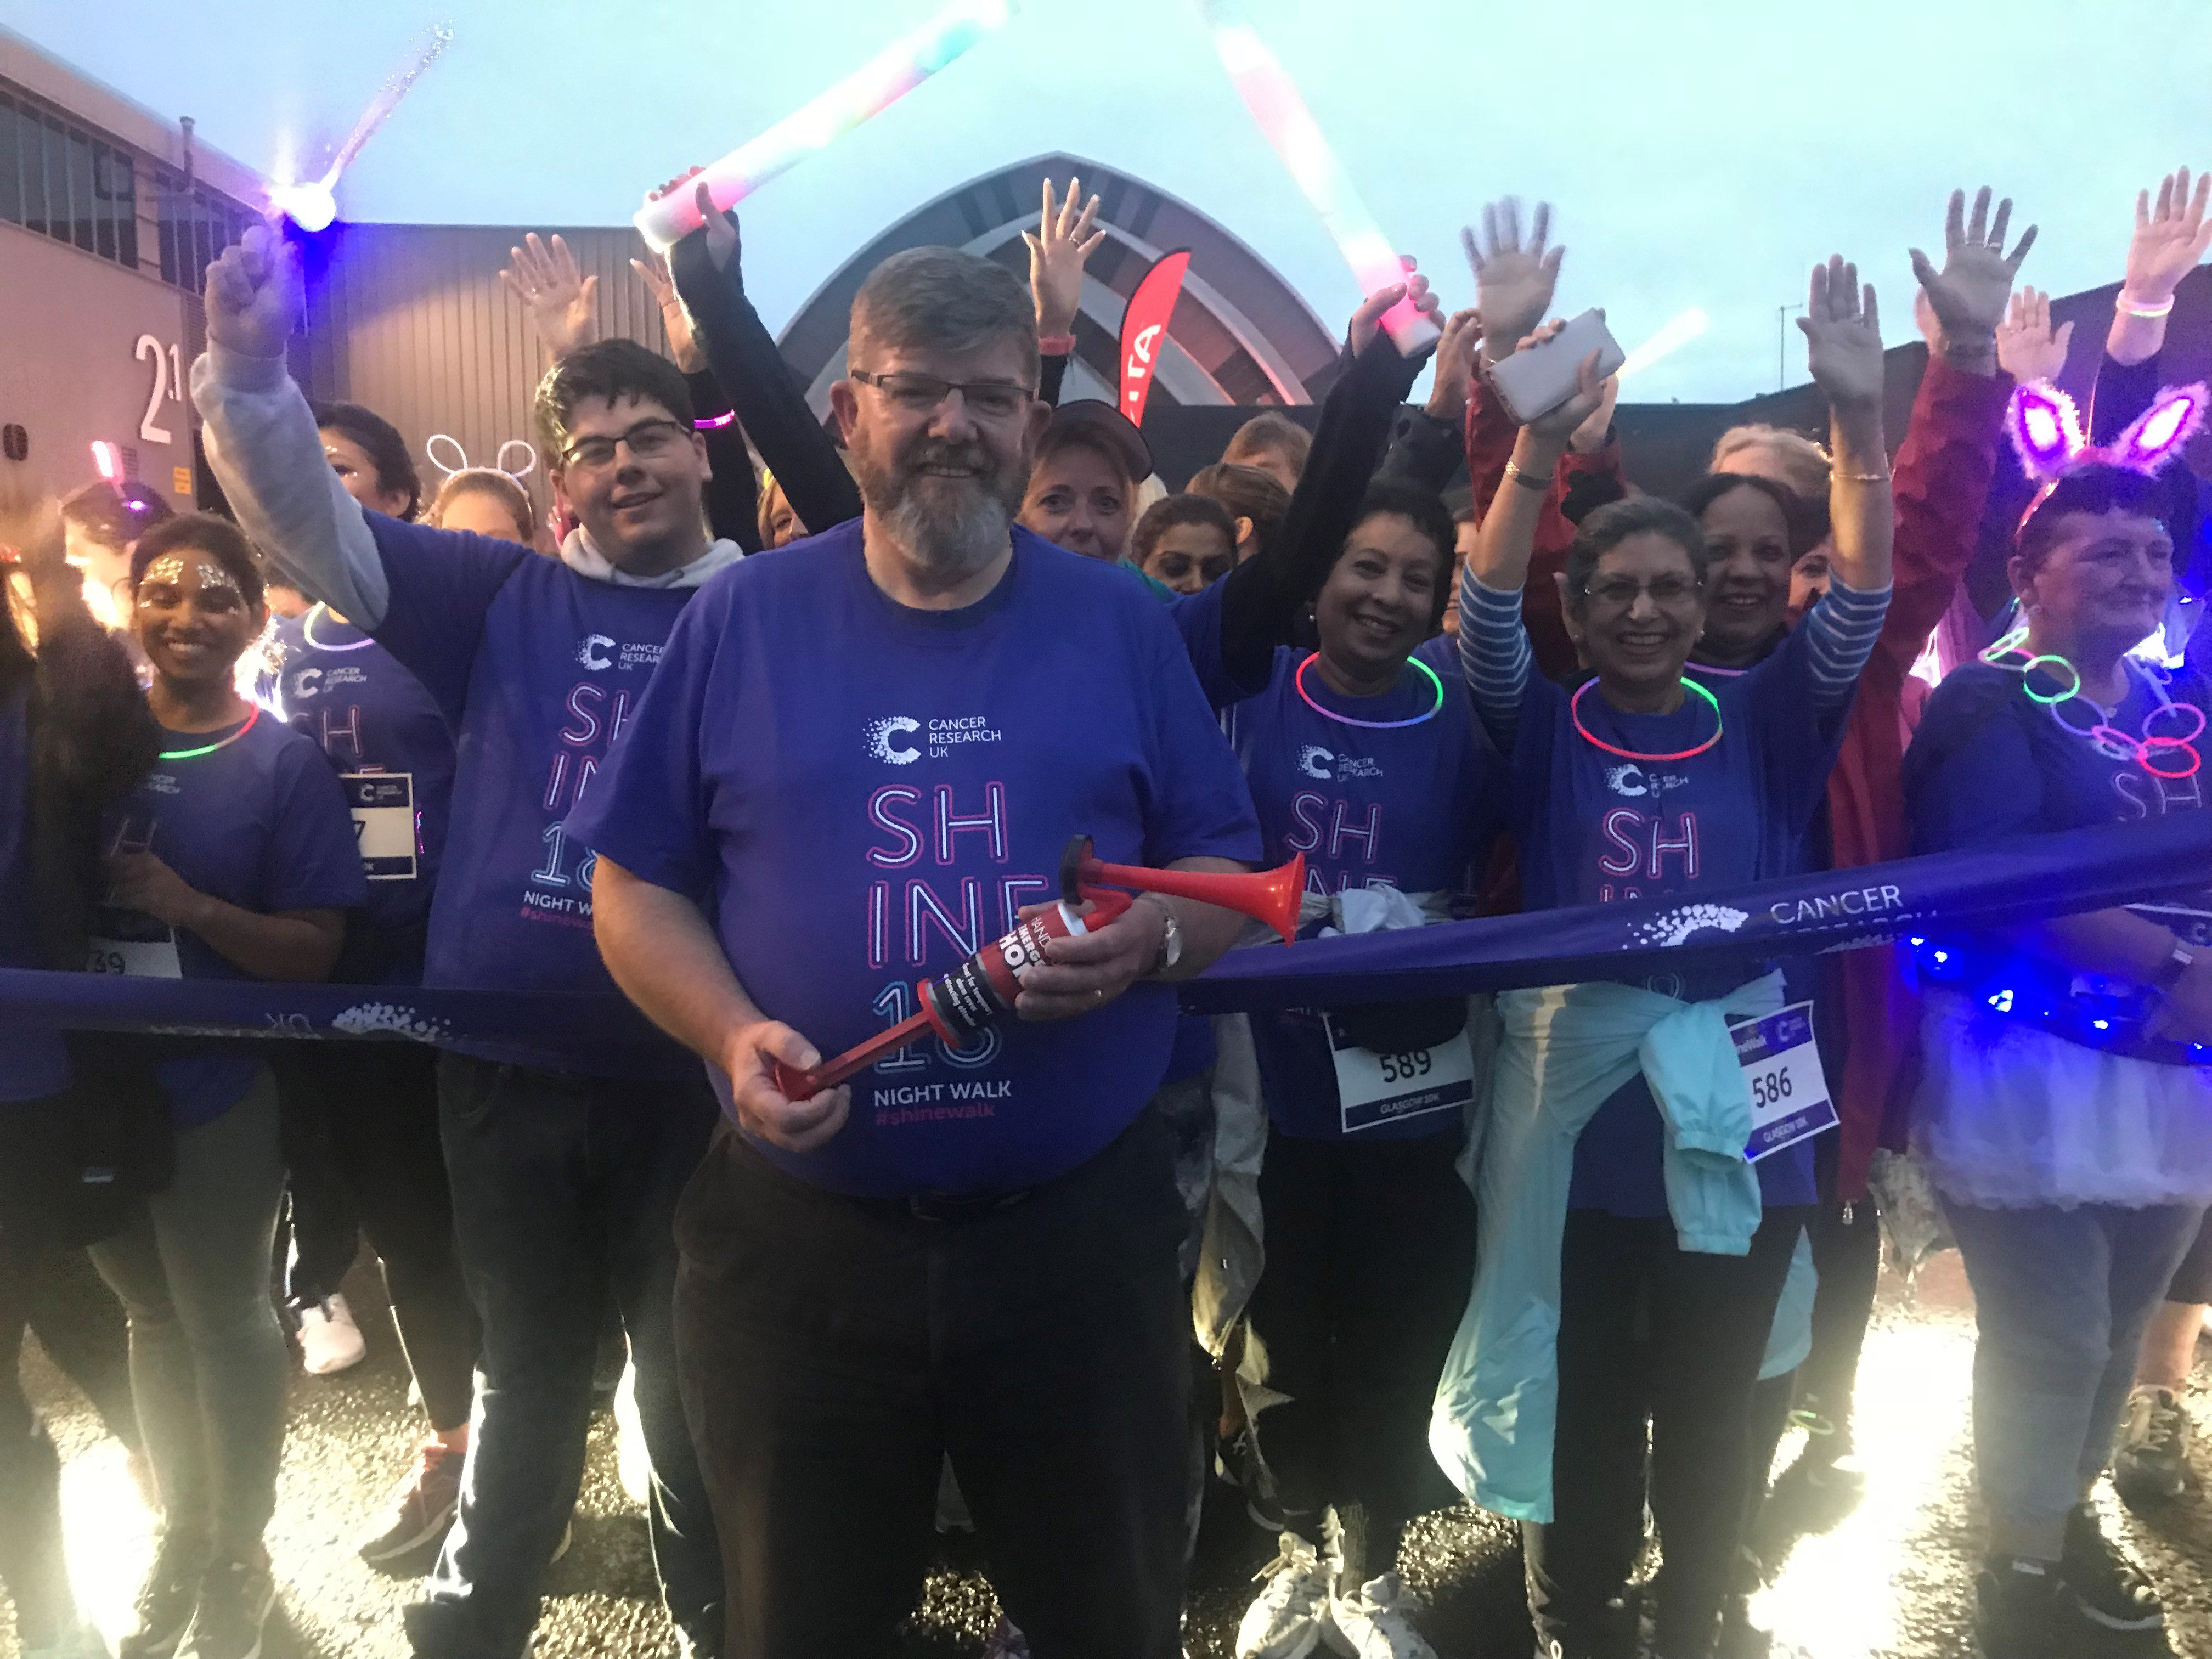 Cancer survivor Ian Anderson sounds the horn at the start of Shine Glasgow, a 10K night-time walk through Glasgow